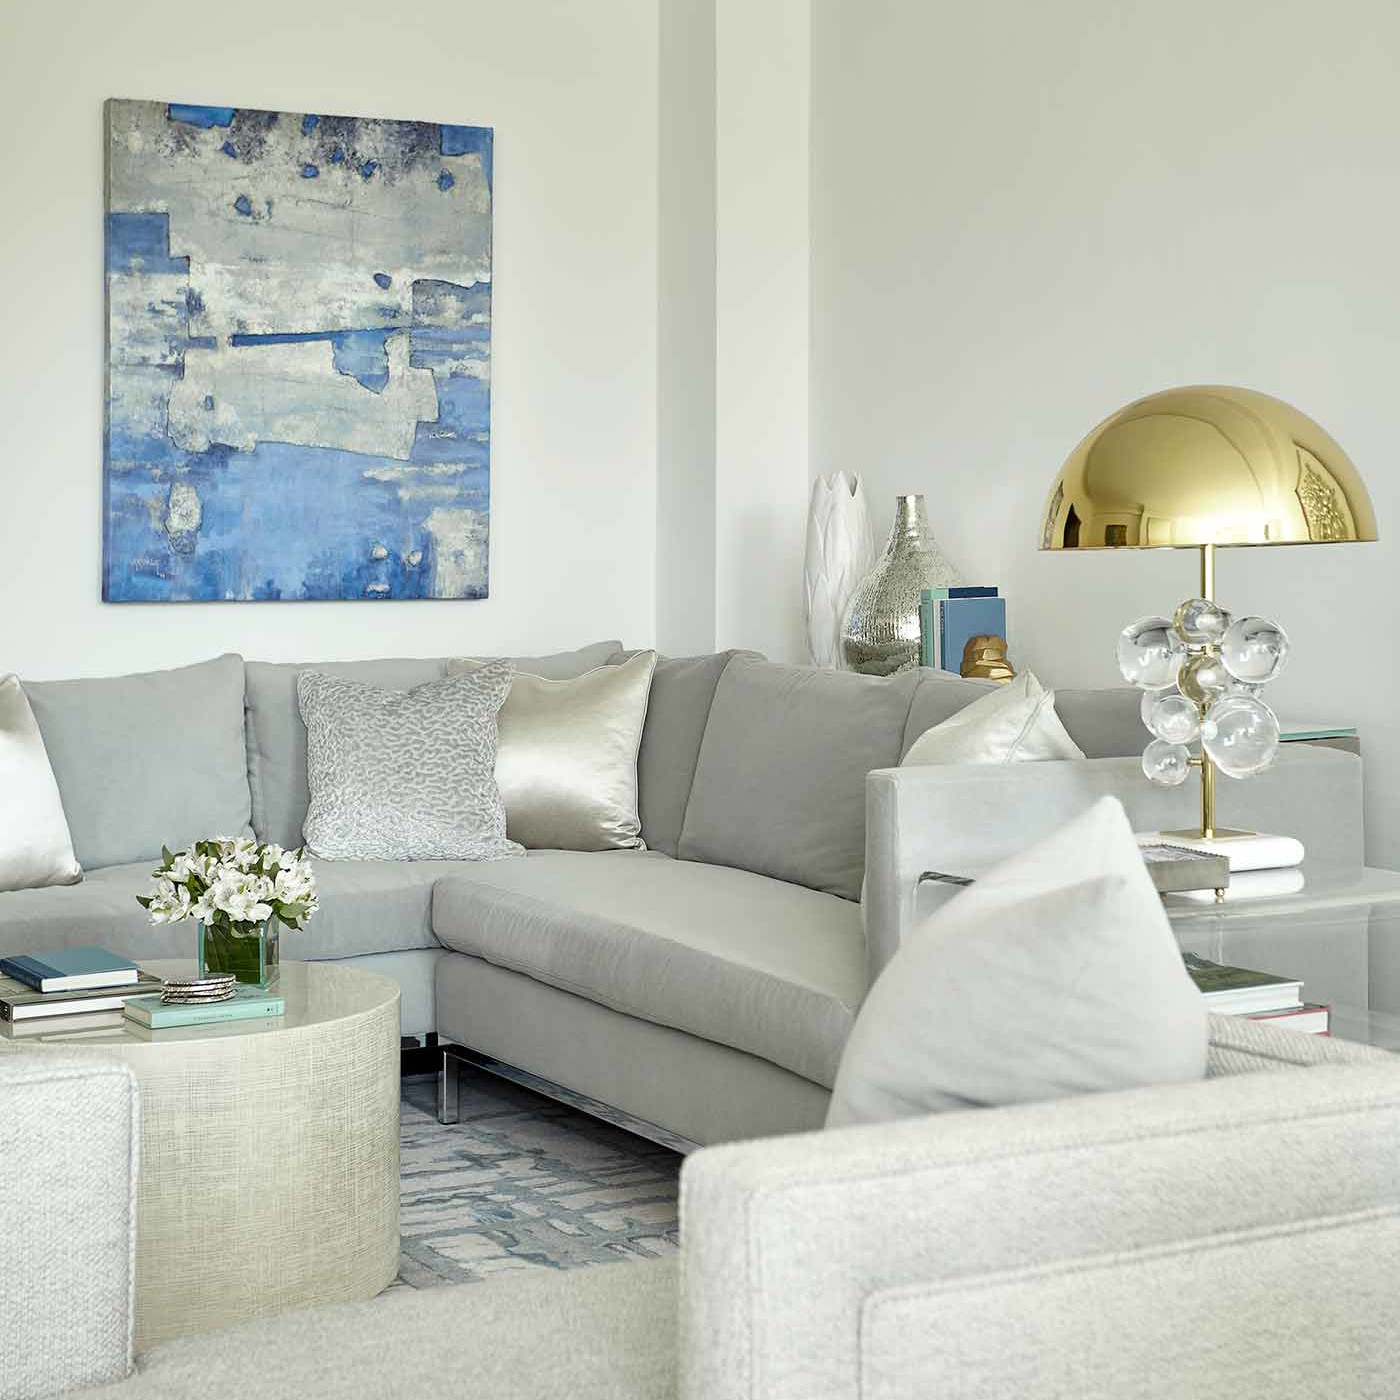 NYC apartment renovation by NYC's top interior design firm Darci Hether New York